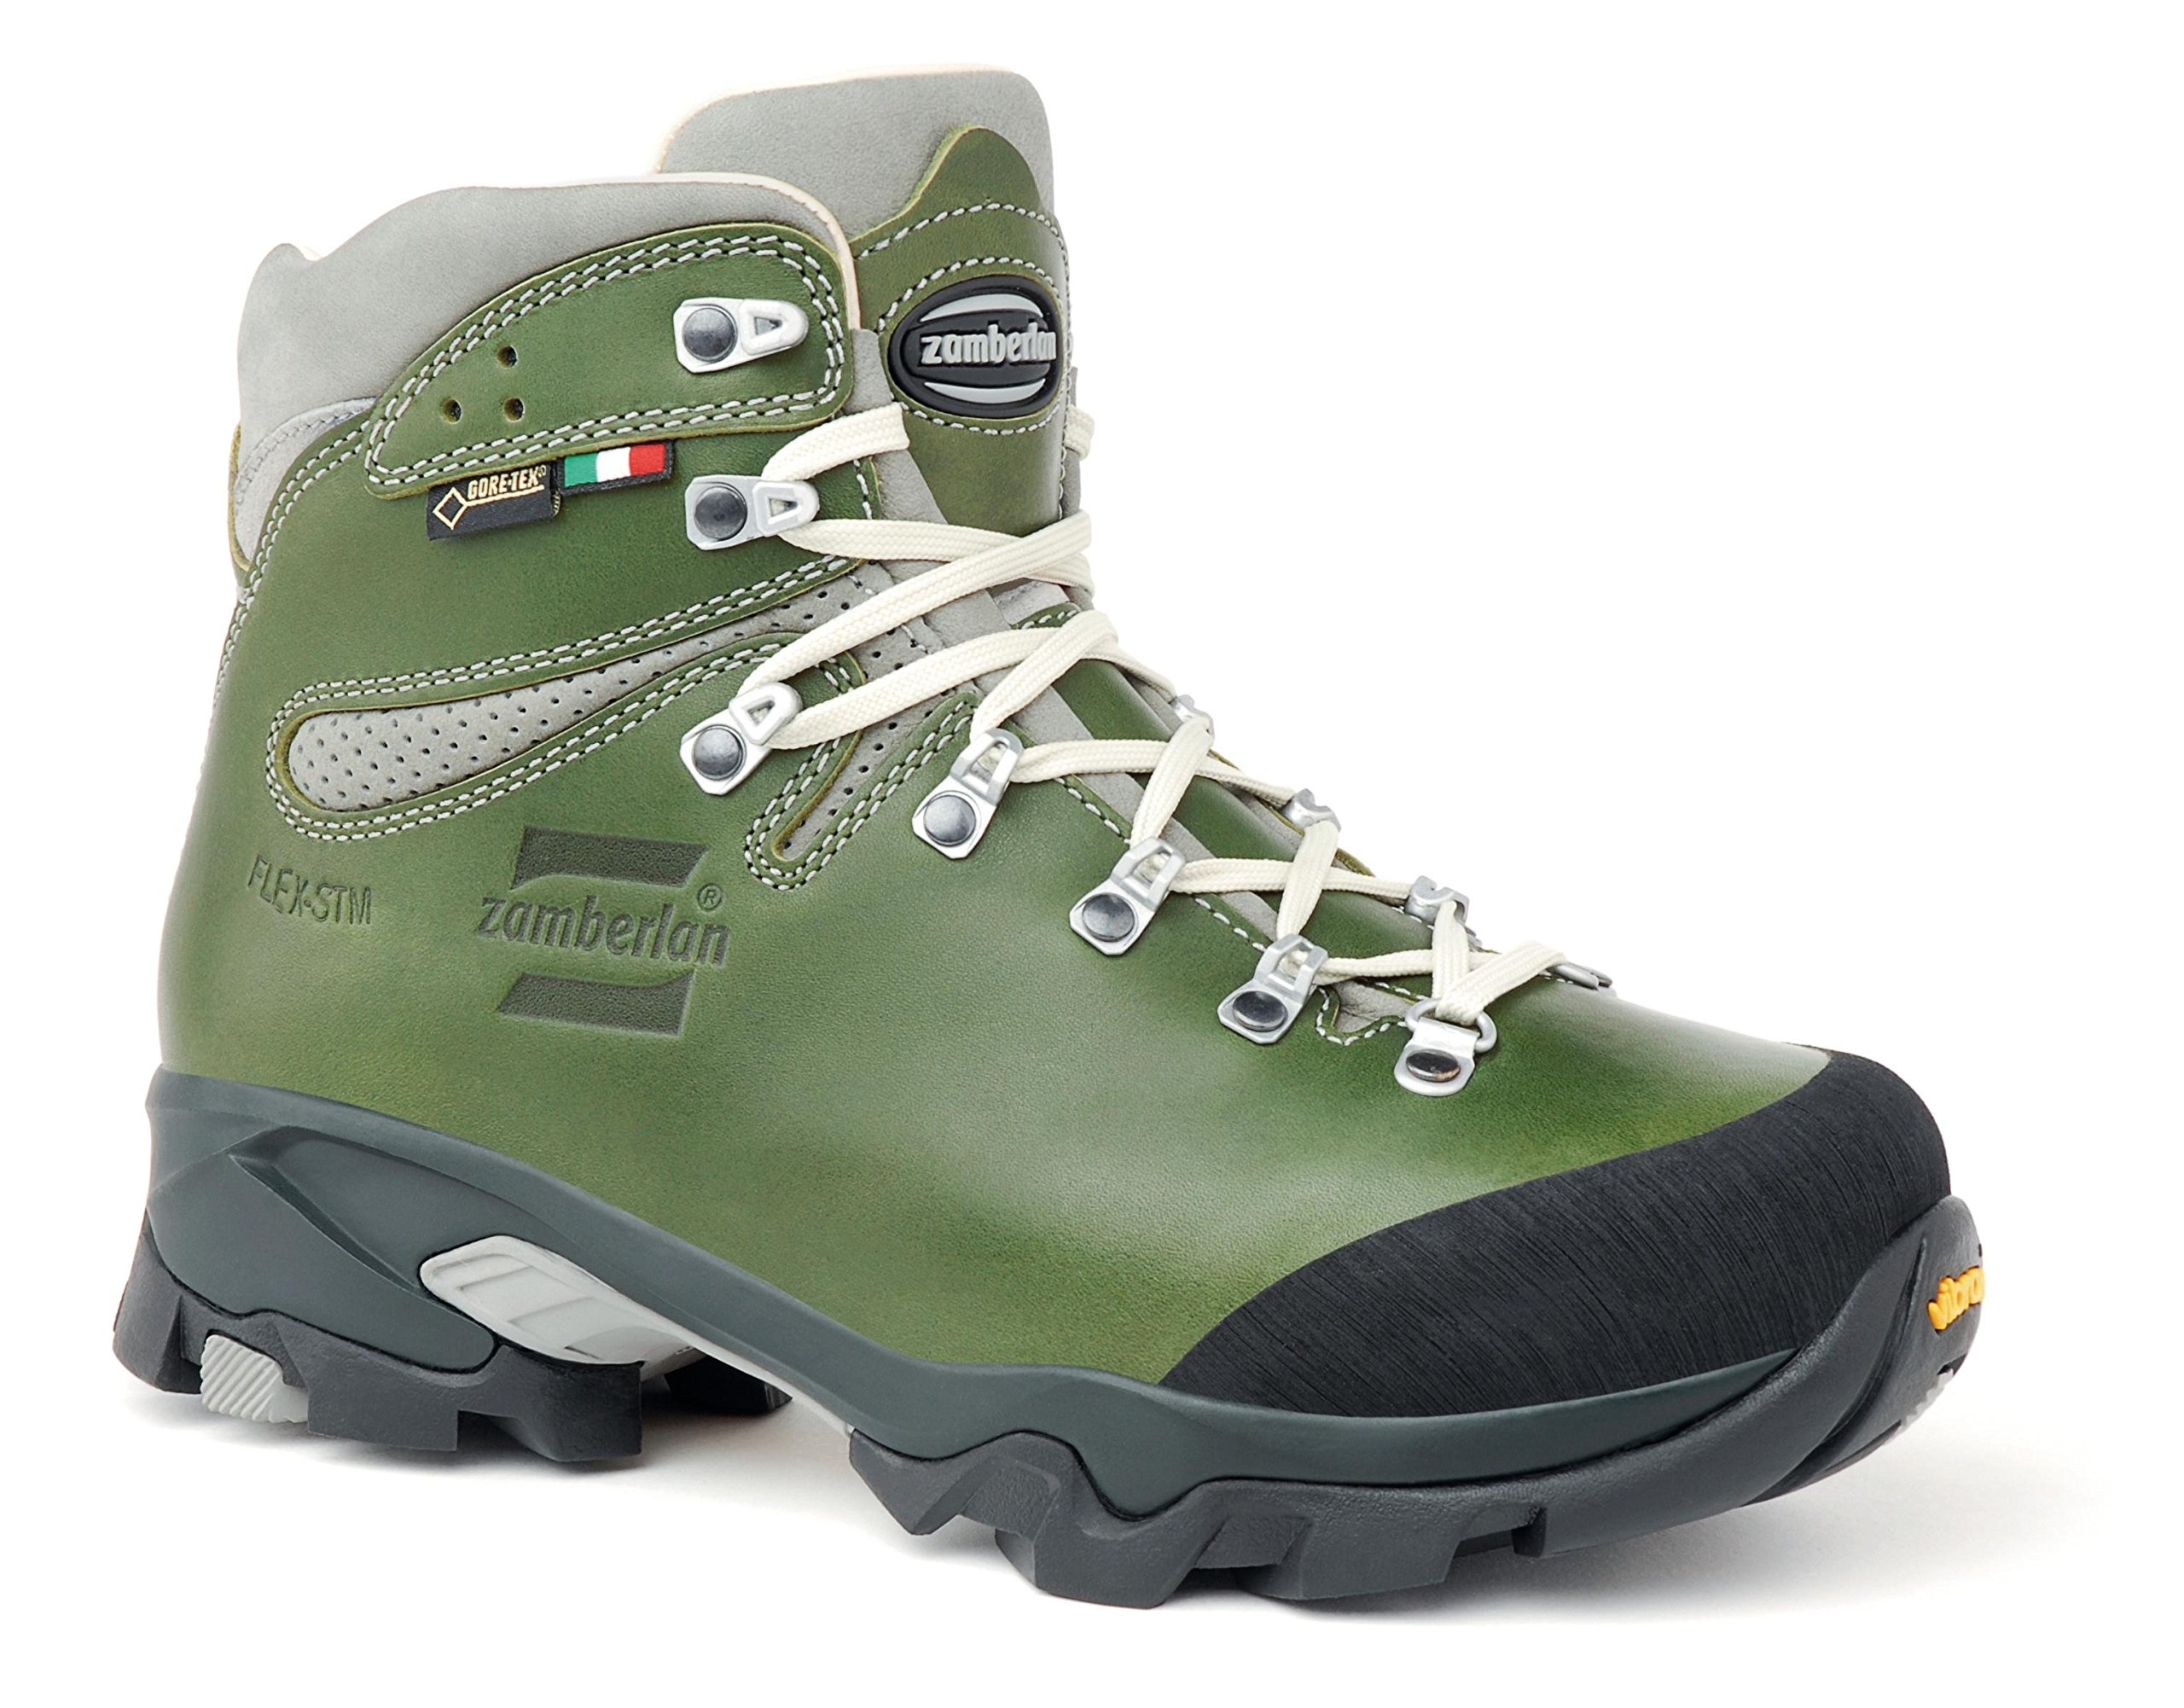 Zamberlan 1996 Vioz Lux GTX RR WNS - Backpacking Boots - Waxed Green - 8.5